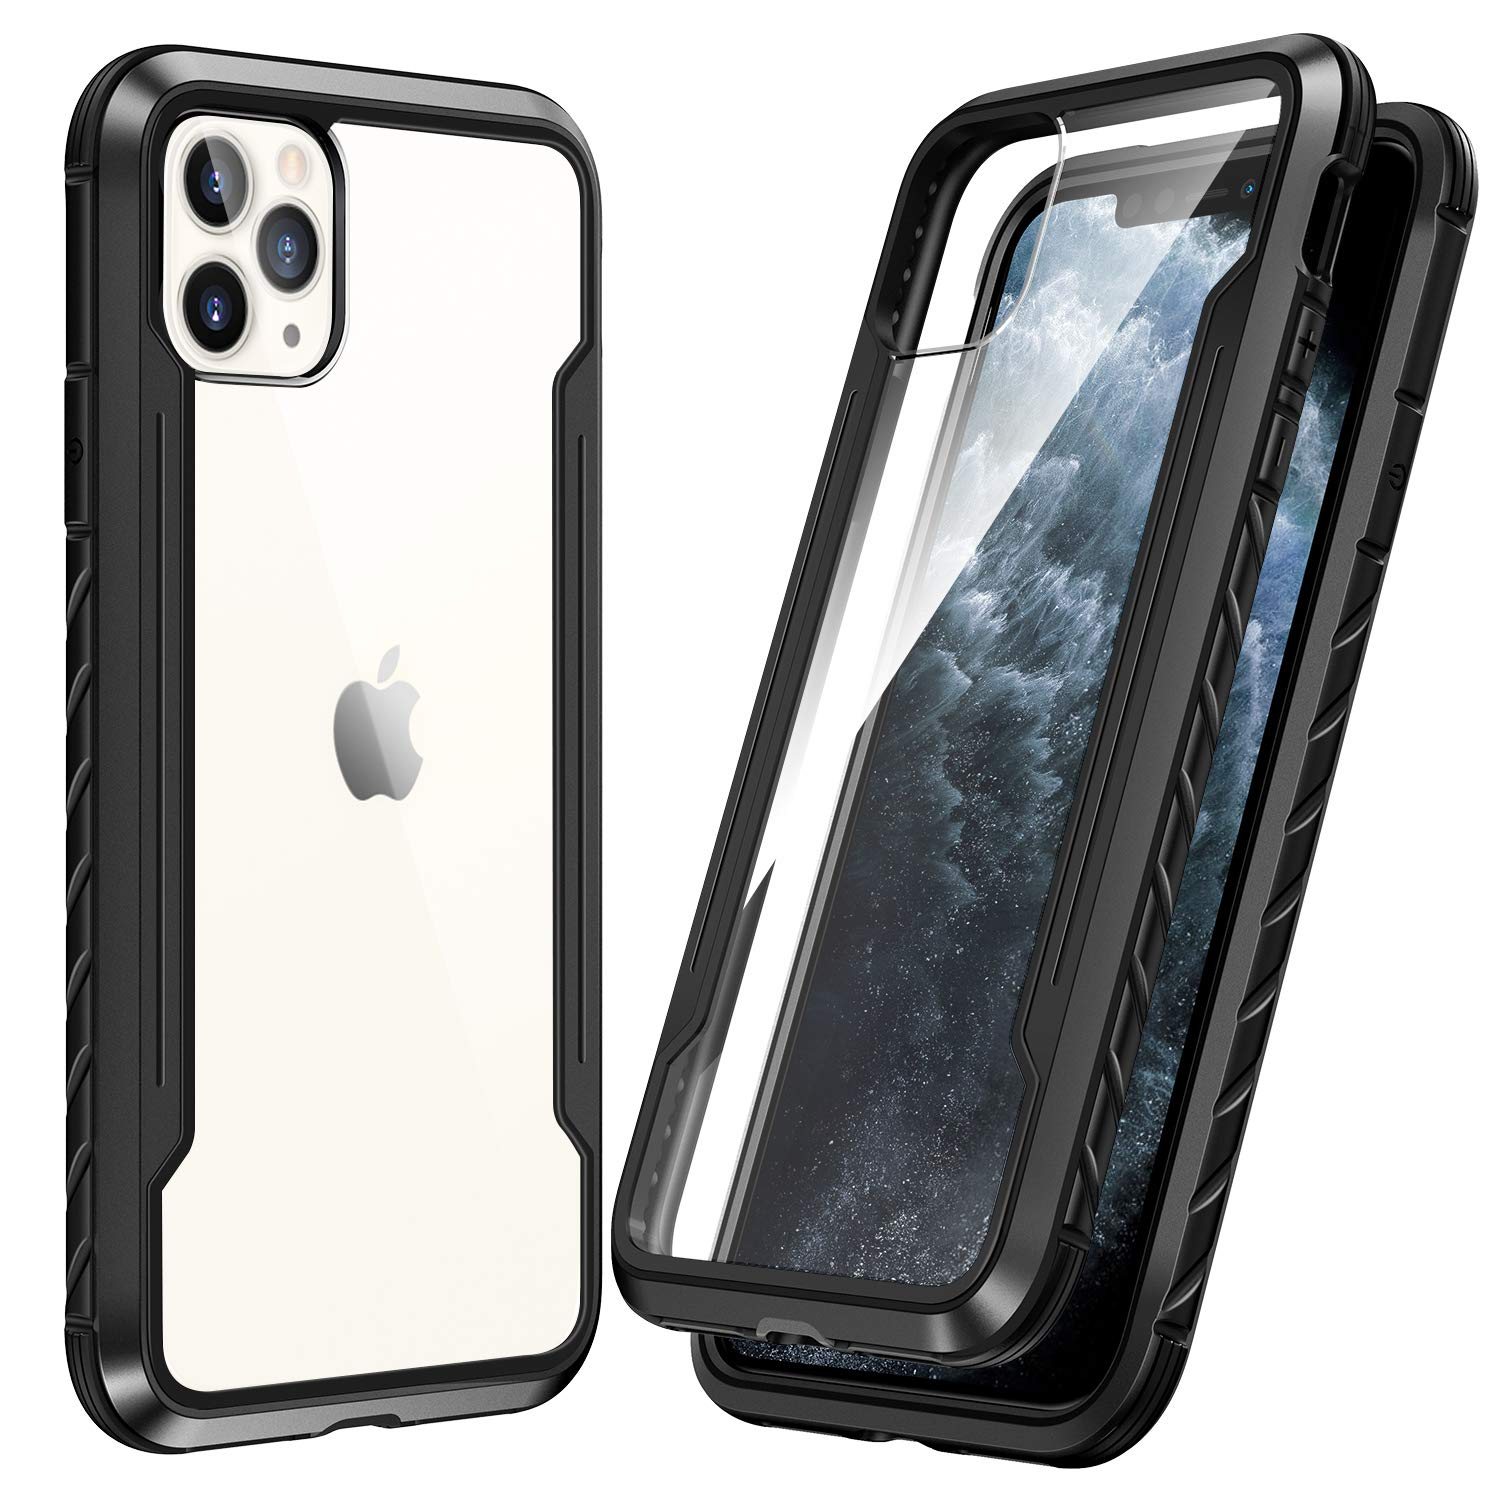 SmartDevil Shatterproof Series Designed for iPhone 11 Pro Cases, Passed Military Grade Drop Test, Anodized Aluminum, TPU, and Hard PC Protective Case for iPhone 11 Pro 5.8 Inch (Black)